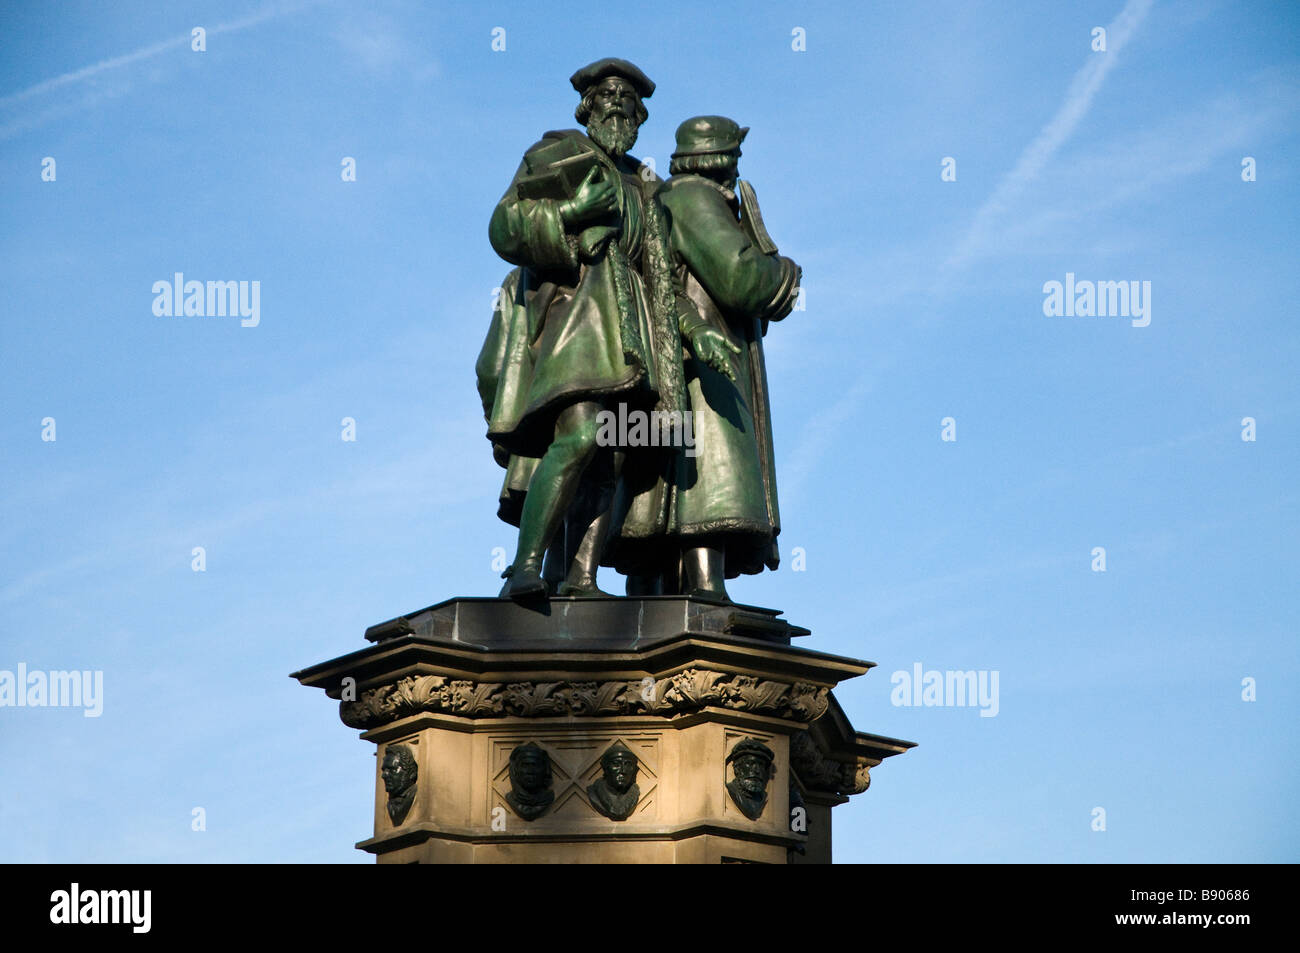 Europe Germany Frankfurt on the Main Downtown Financial district Johannes Gutenberg memorial - Stock Image